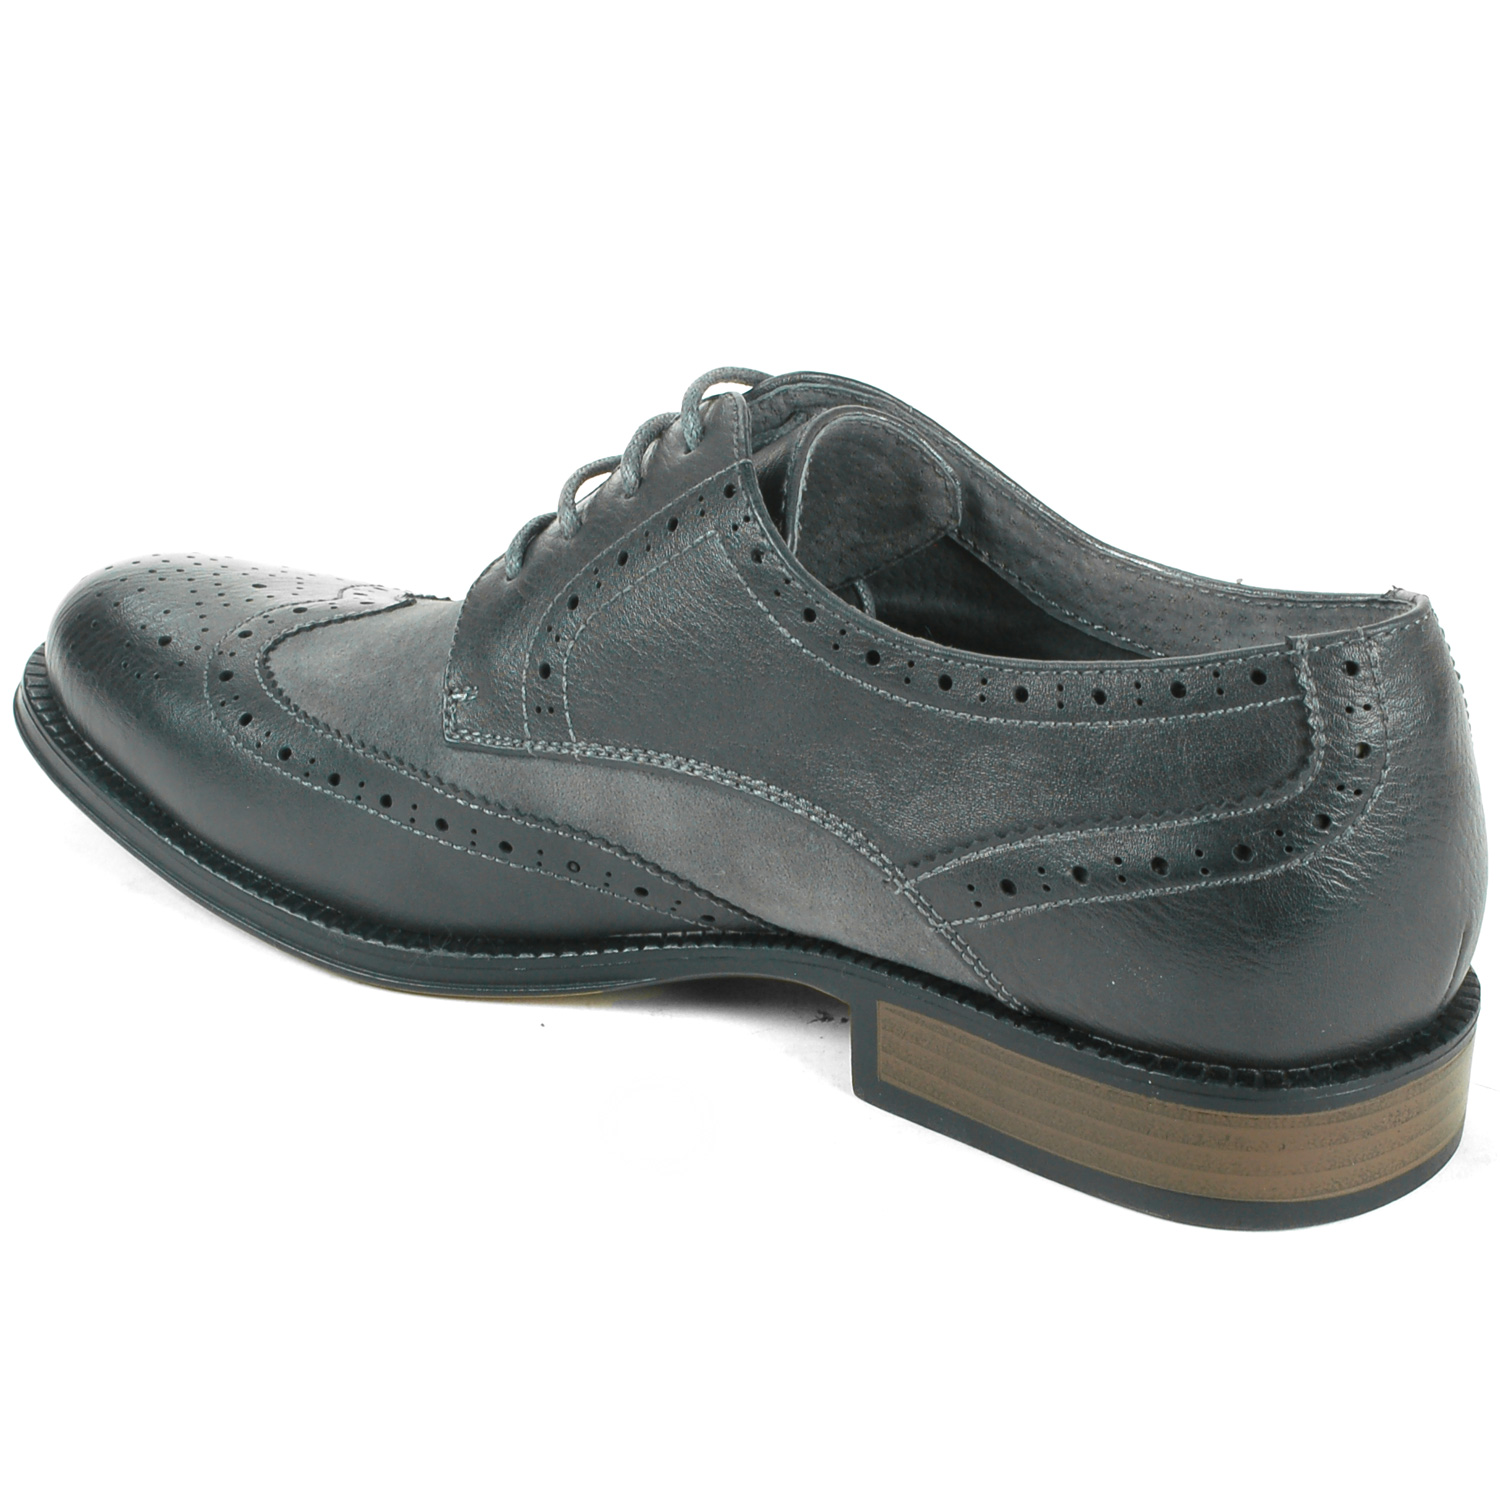 alpine swiss zurich s wing tip dress shoes two tone